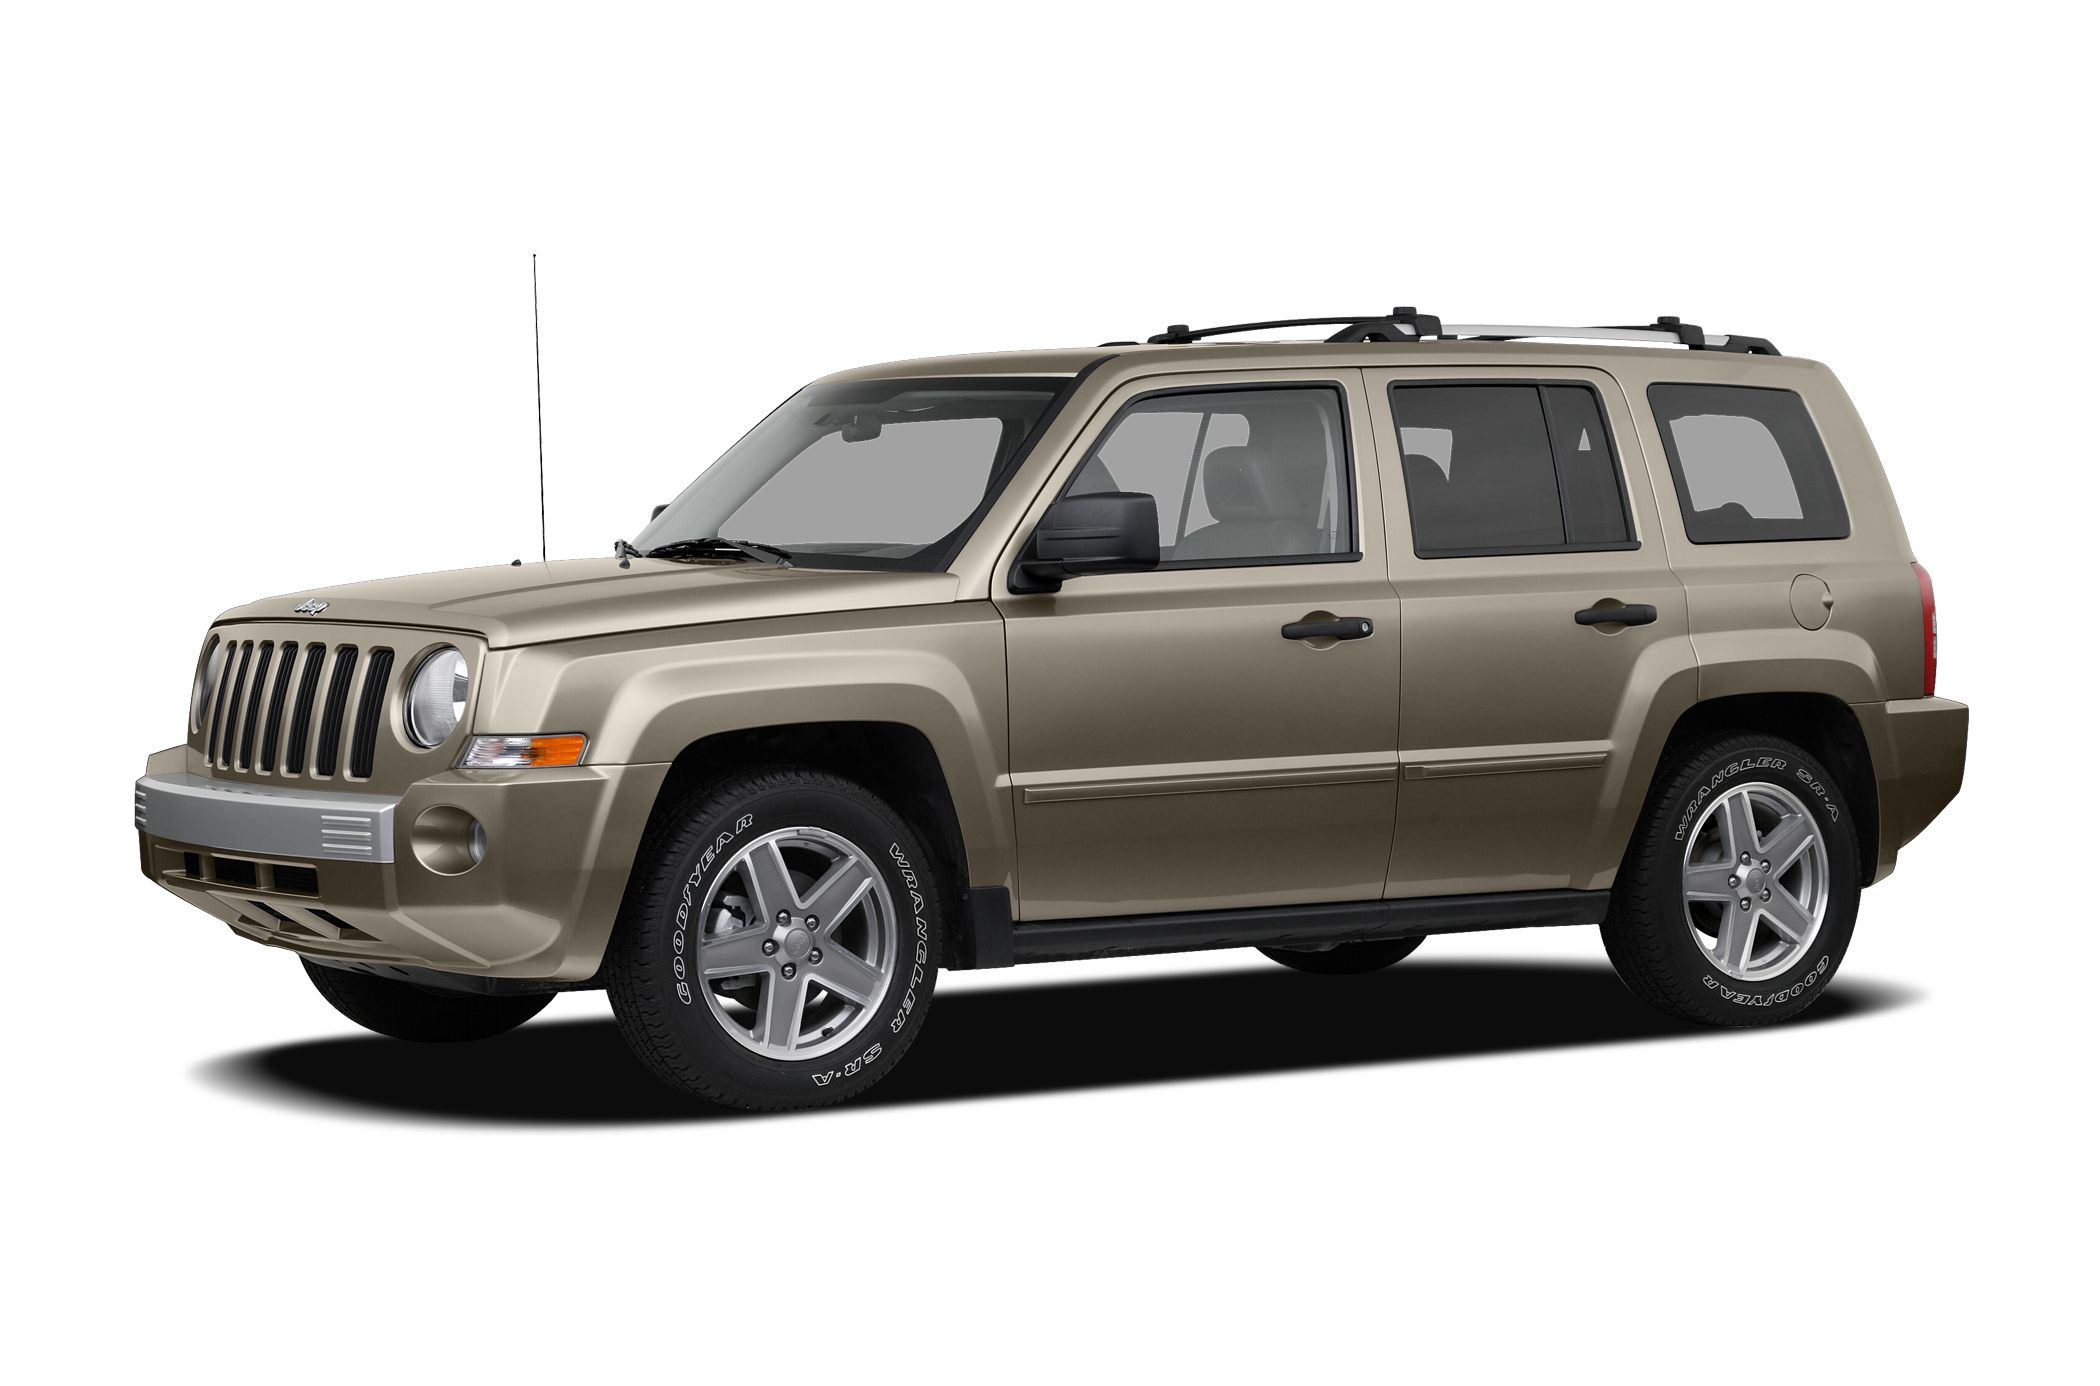 2008 Jeep Patriot Limited SUV for sale in Paducah for $13,995 with 37,343 miles